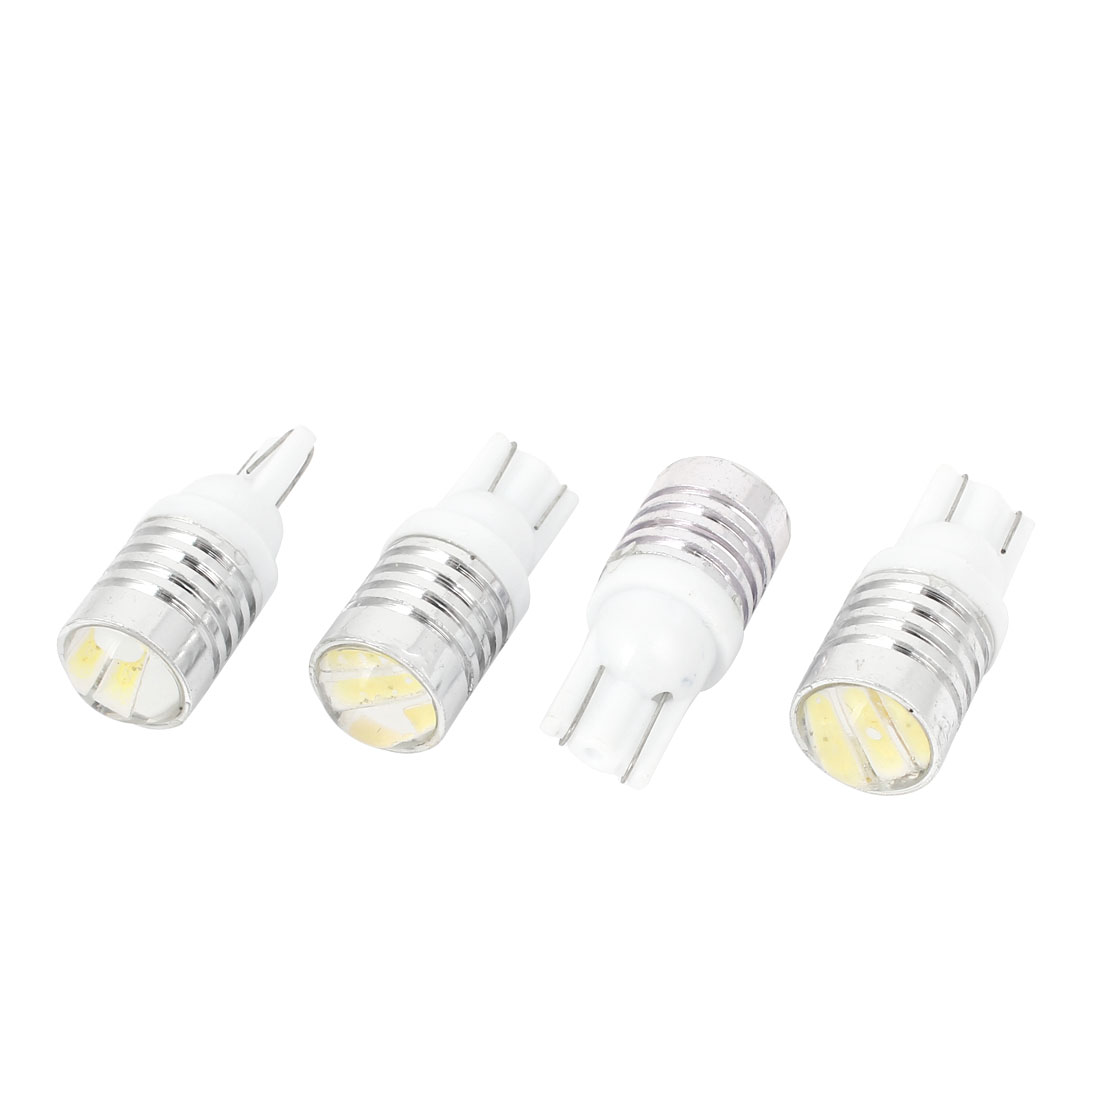 4 Pcs T20 7440 White 720 3 SMD LED Lens Auto Turning Signal Backup Reverse Tail Light Bulb Lamp